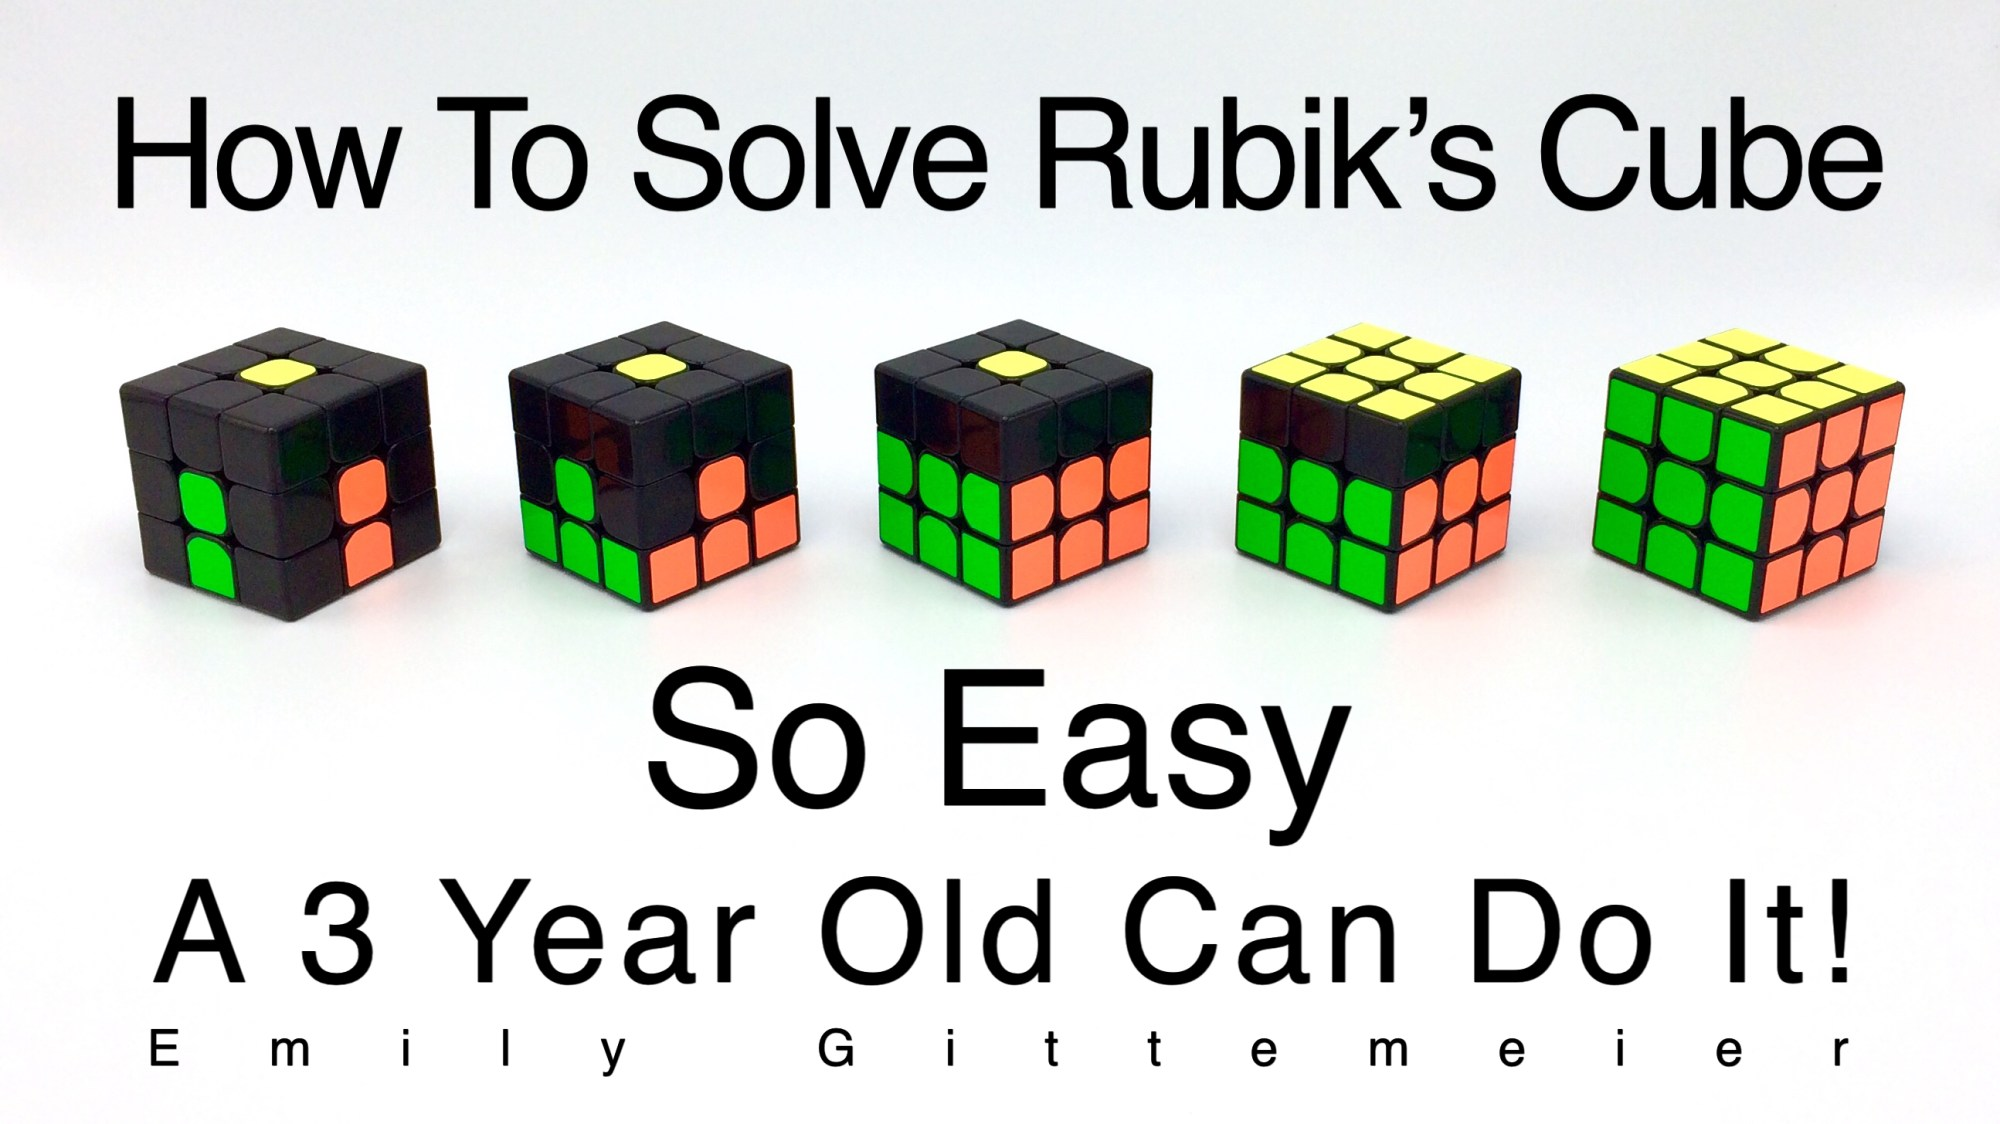 hight resolution of how to solve a rubik s cube so easy a 3 year old can do it easy beginner step by step tutorial